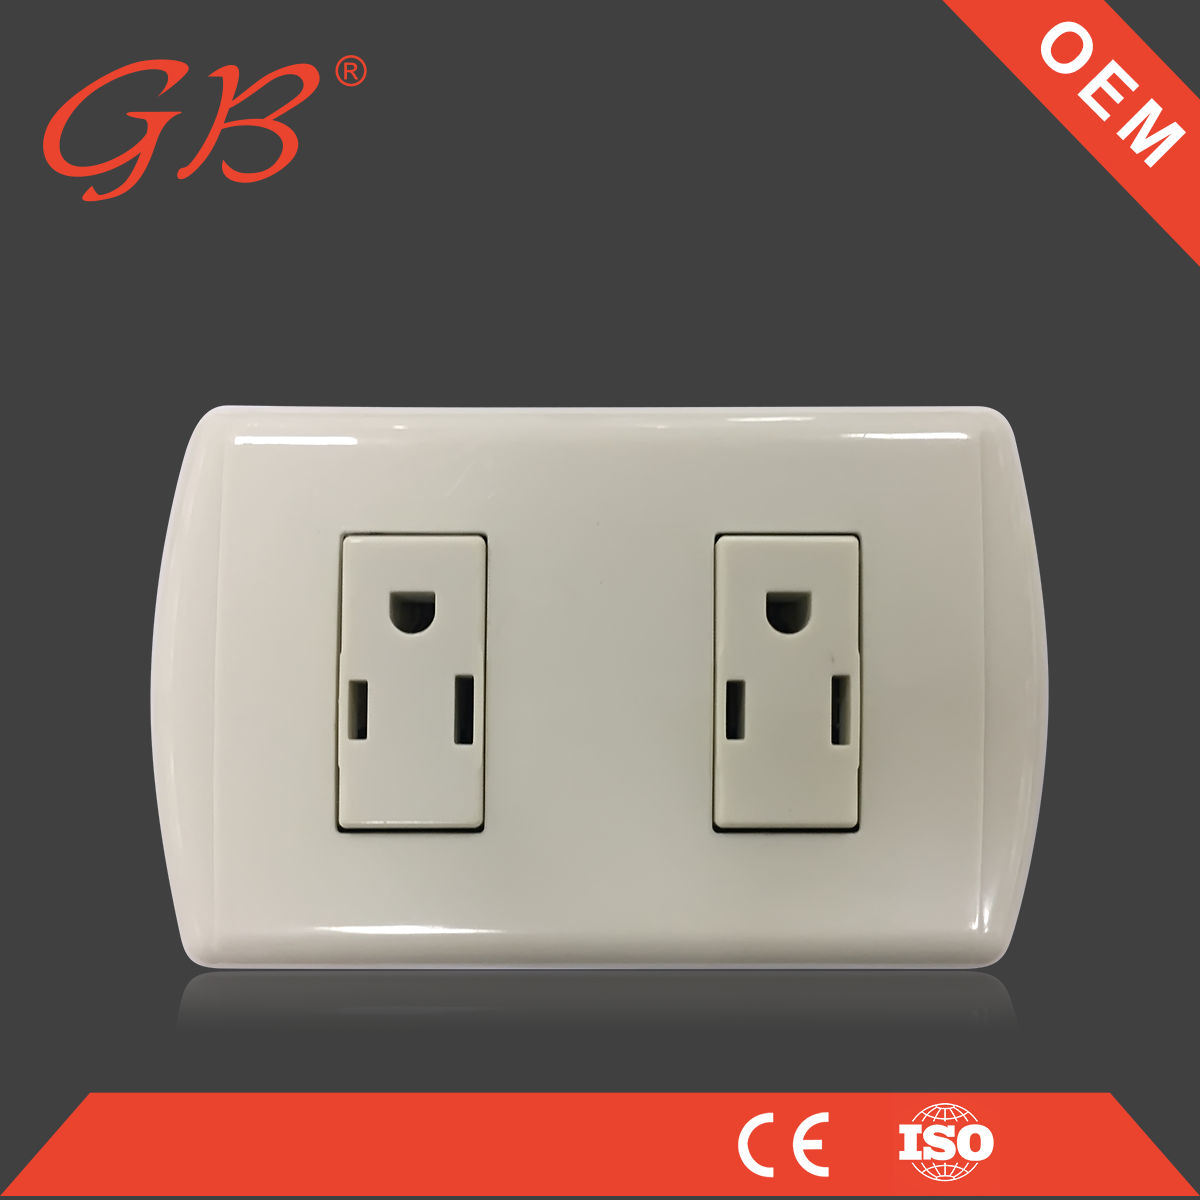 China Electric American Standard Electrical Wall Socket Outlet ...